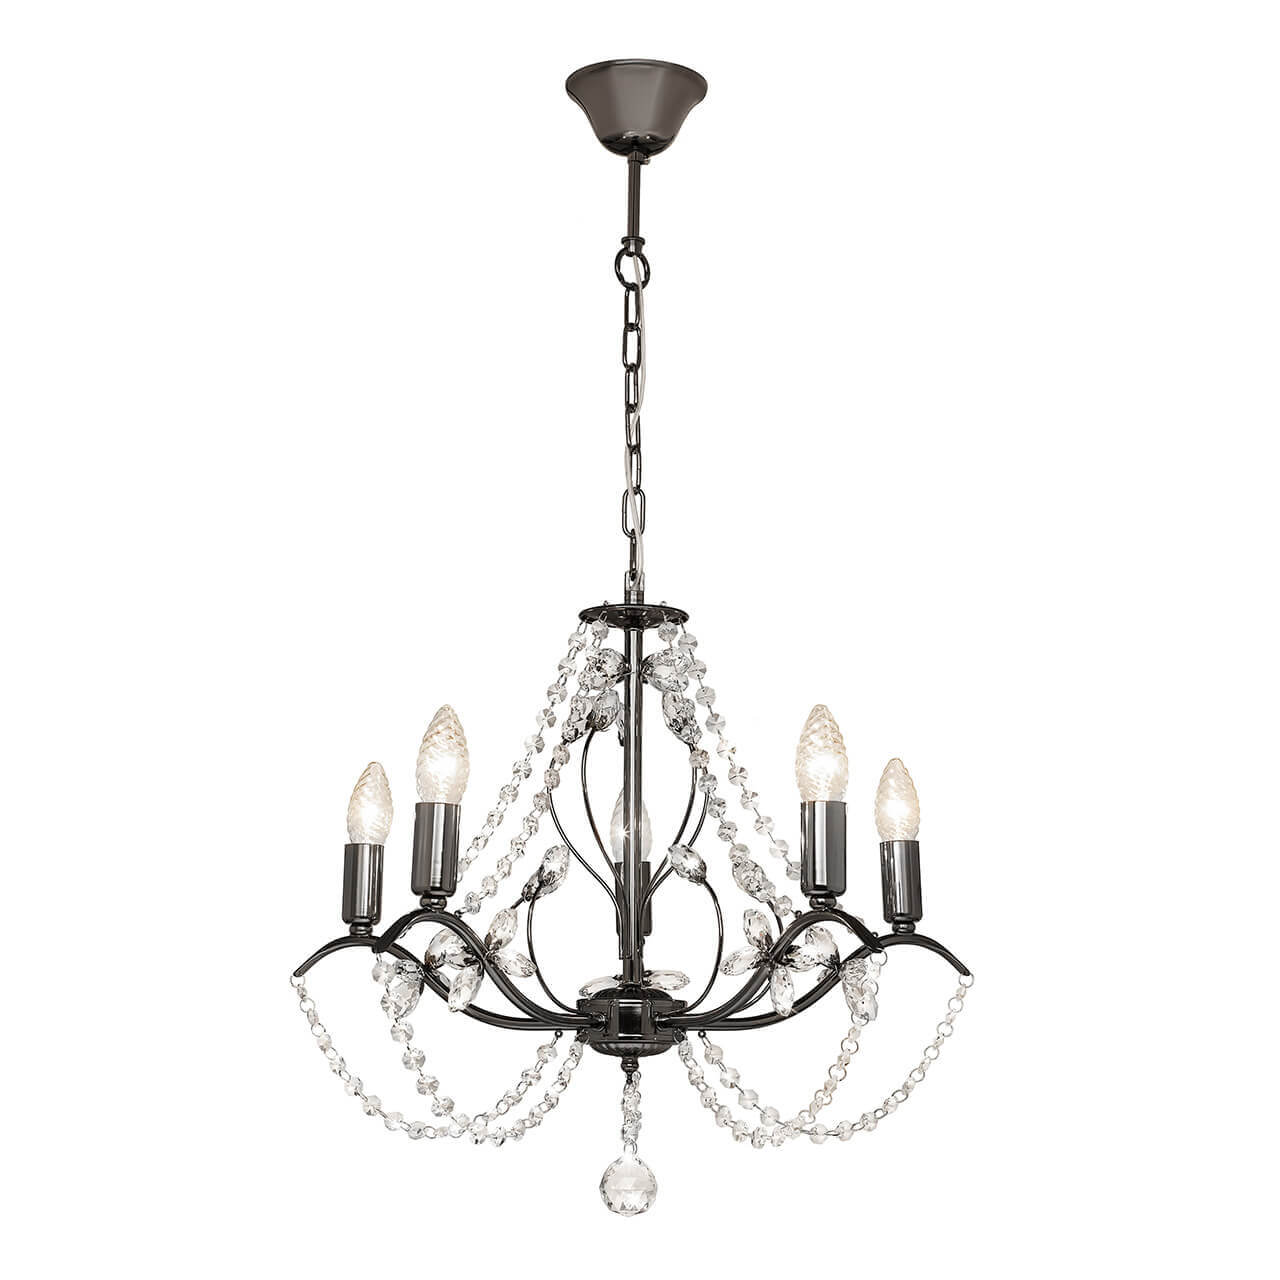 Люстра Silver Light 726.59.5 Antoinette Black бра silver light 726 48 1 antoinette